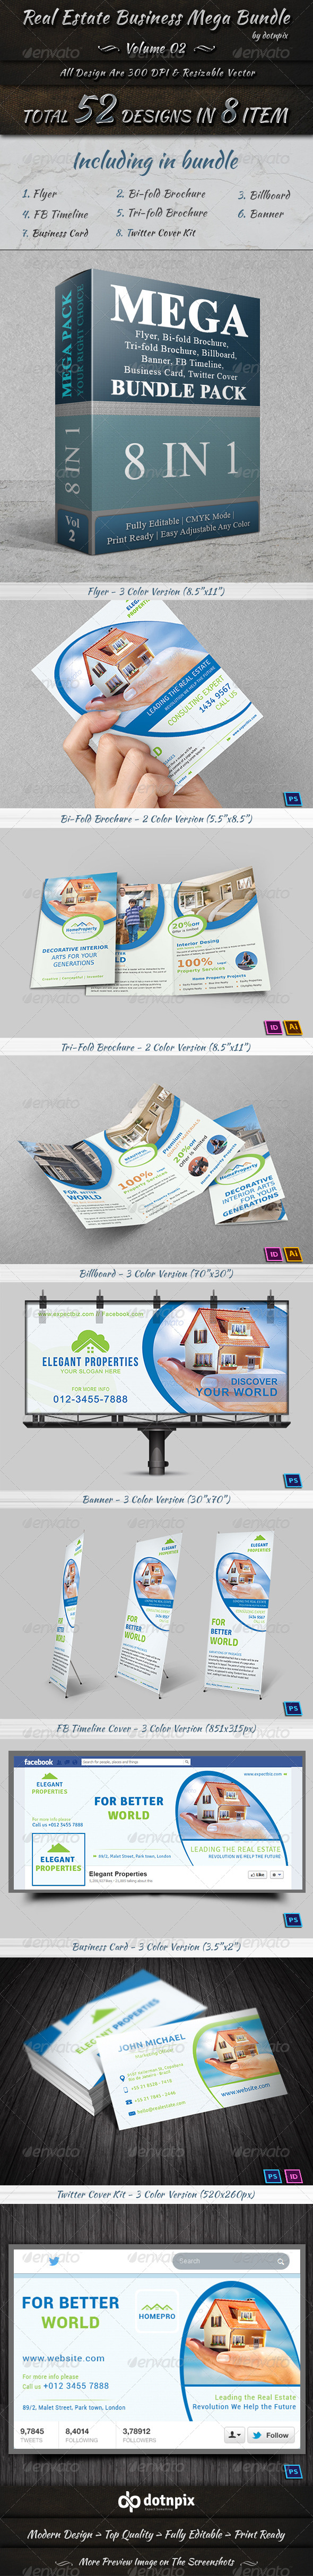 GraphicRiver Real Estate Business Mega Bundle Volume 2 7440966